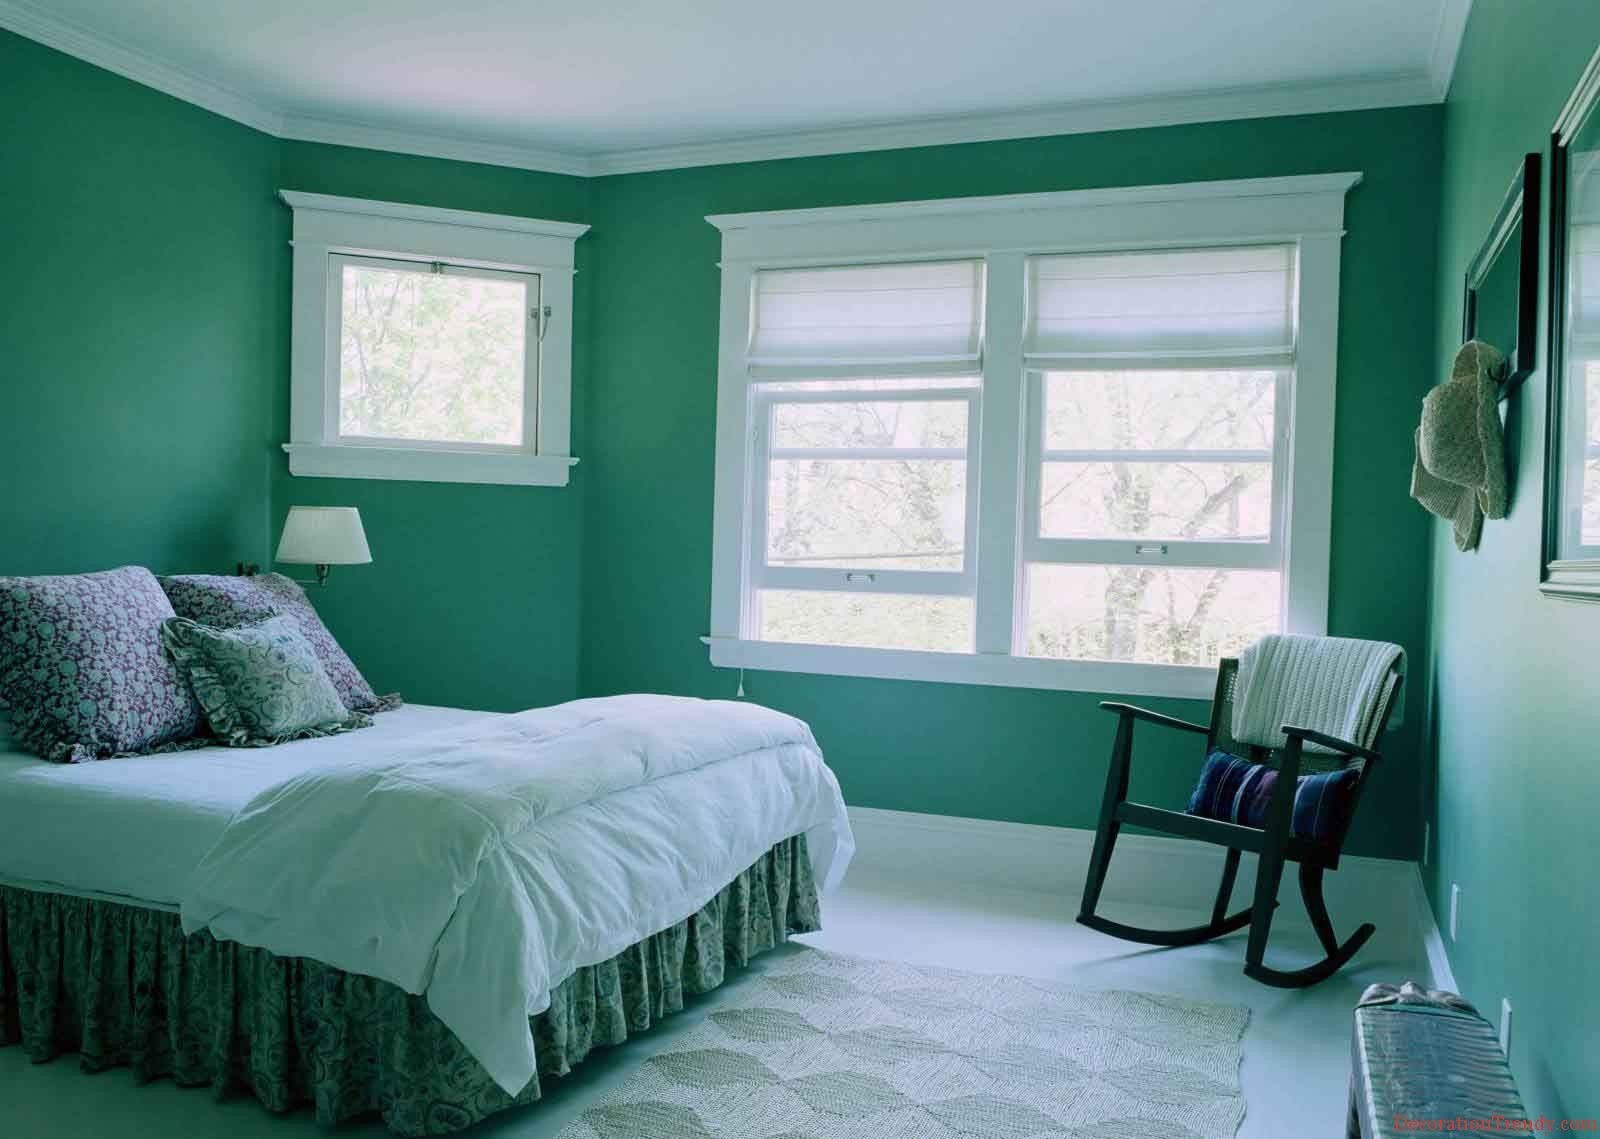 Bedroom colors green and white - The Amazing Persian Green Bedroom Color Scheme With White Ceiling And Viridian Bed Remarkable Bedroom